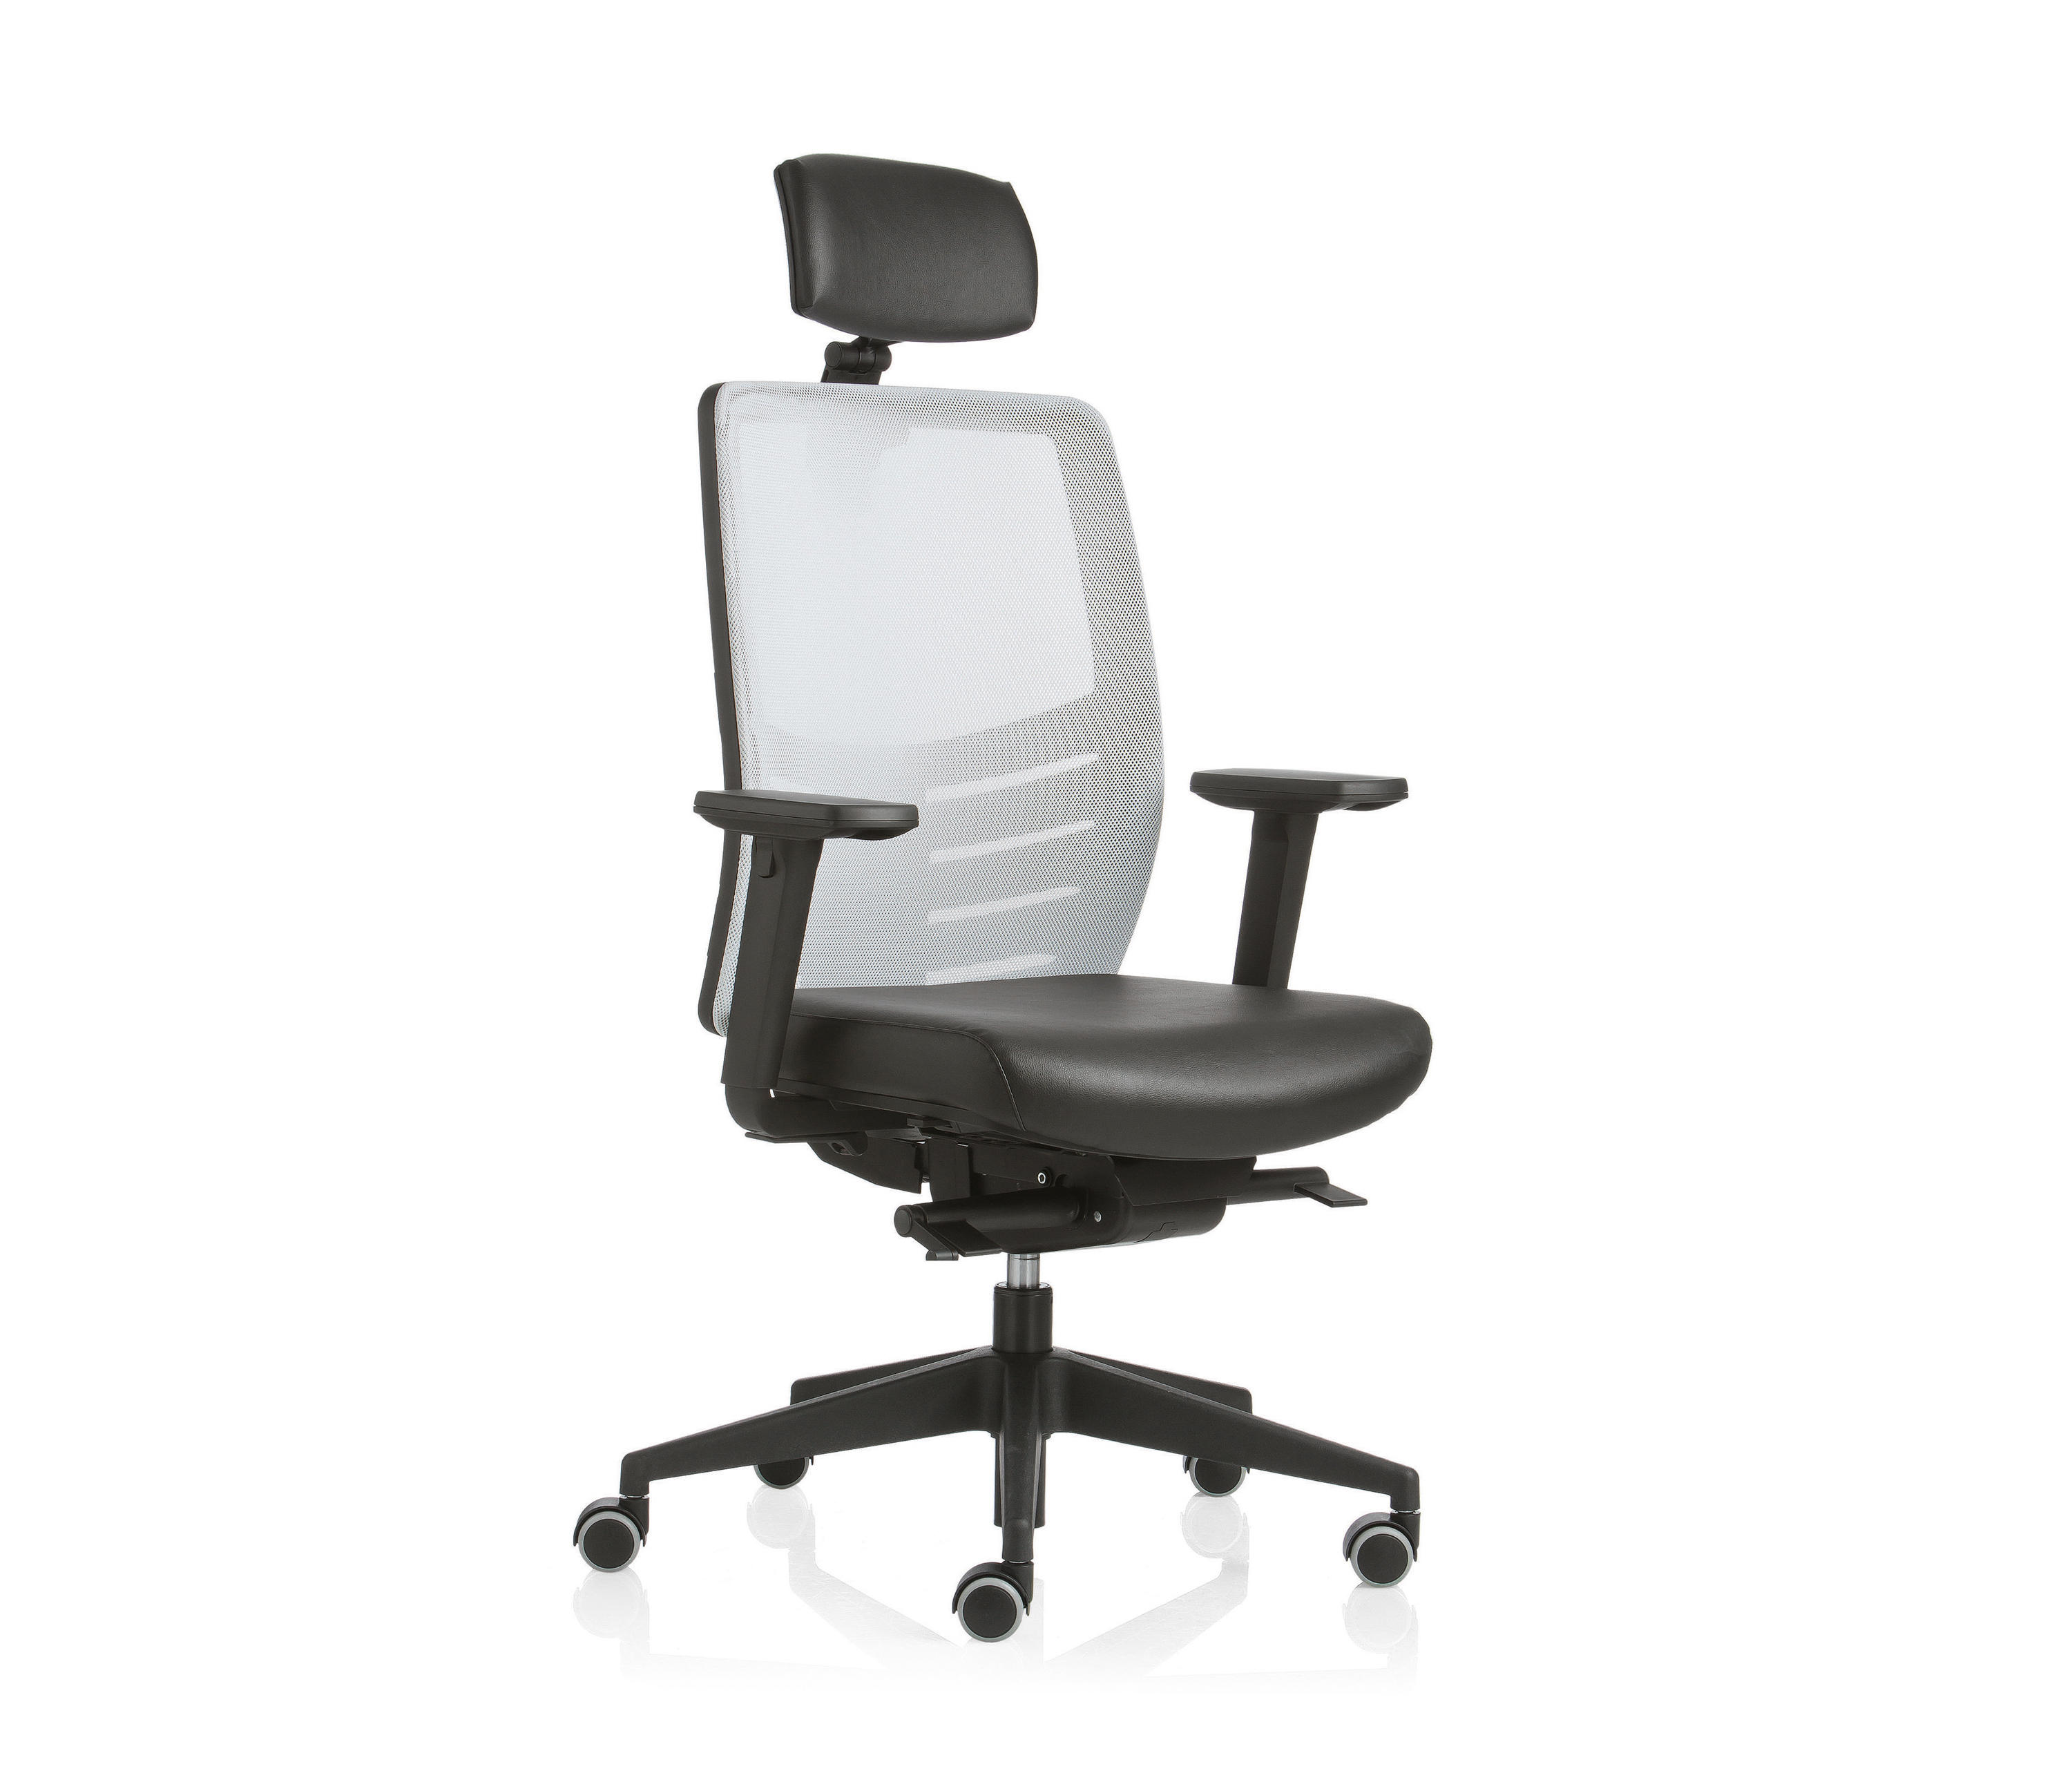 swivel chair em portugues swing autocad block plan 49 mesh direktionsdrehstühle von emmegi architonic